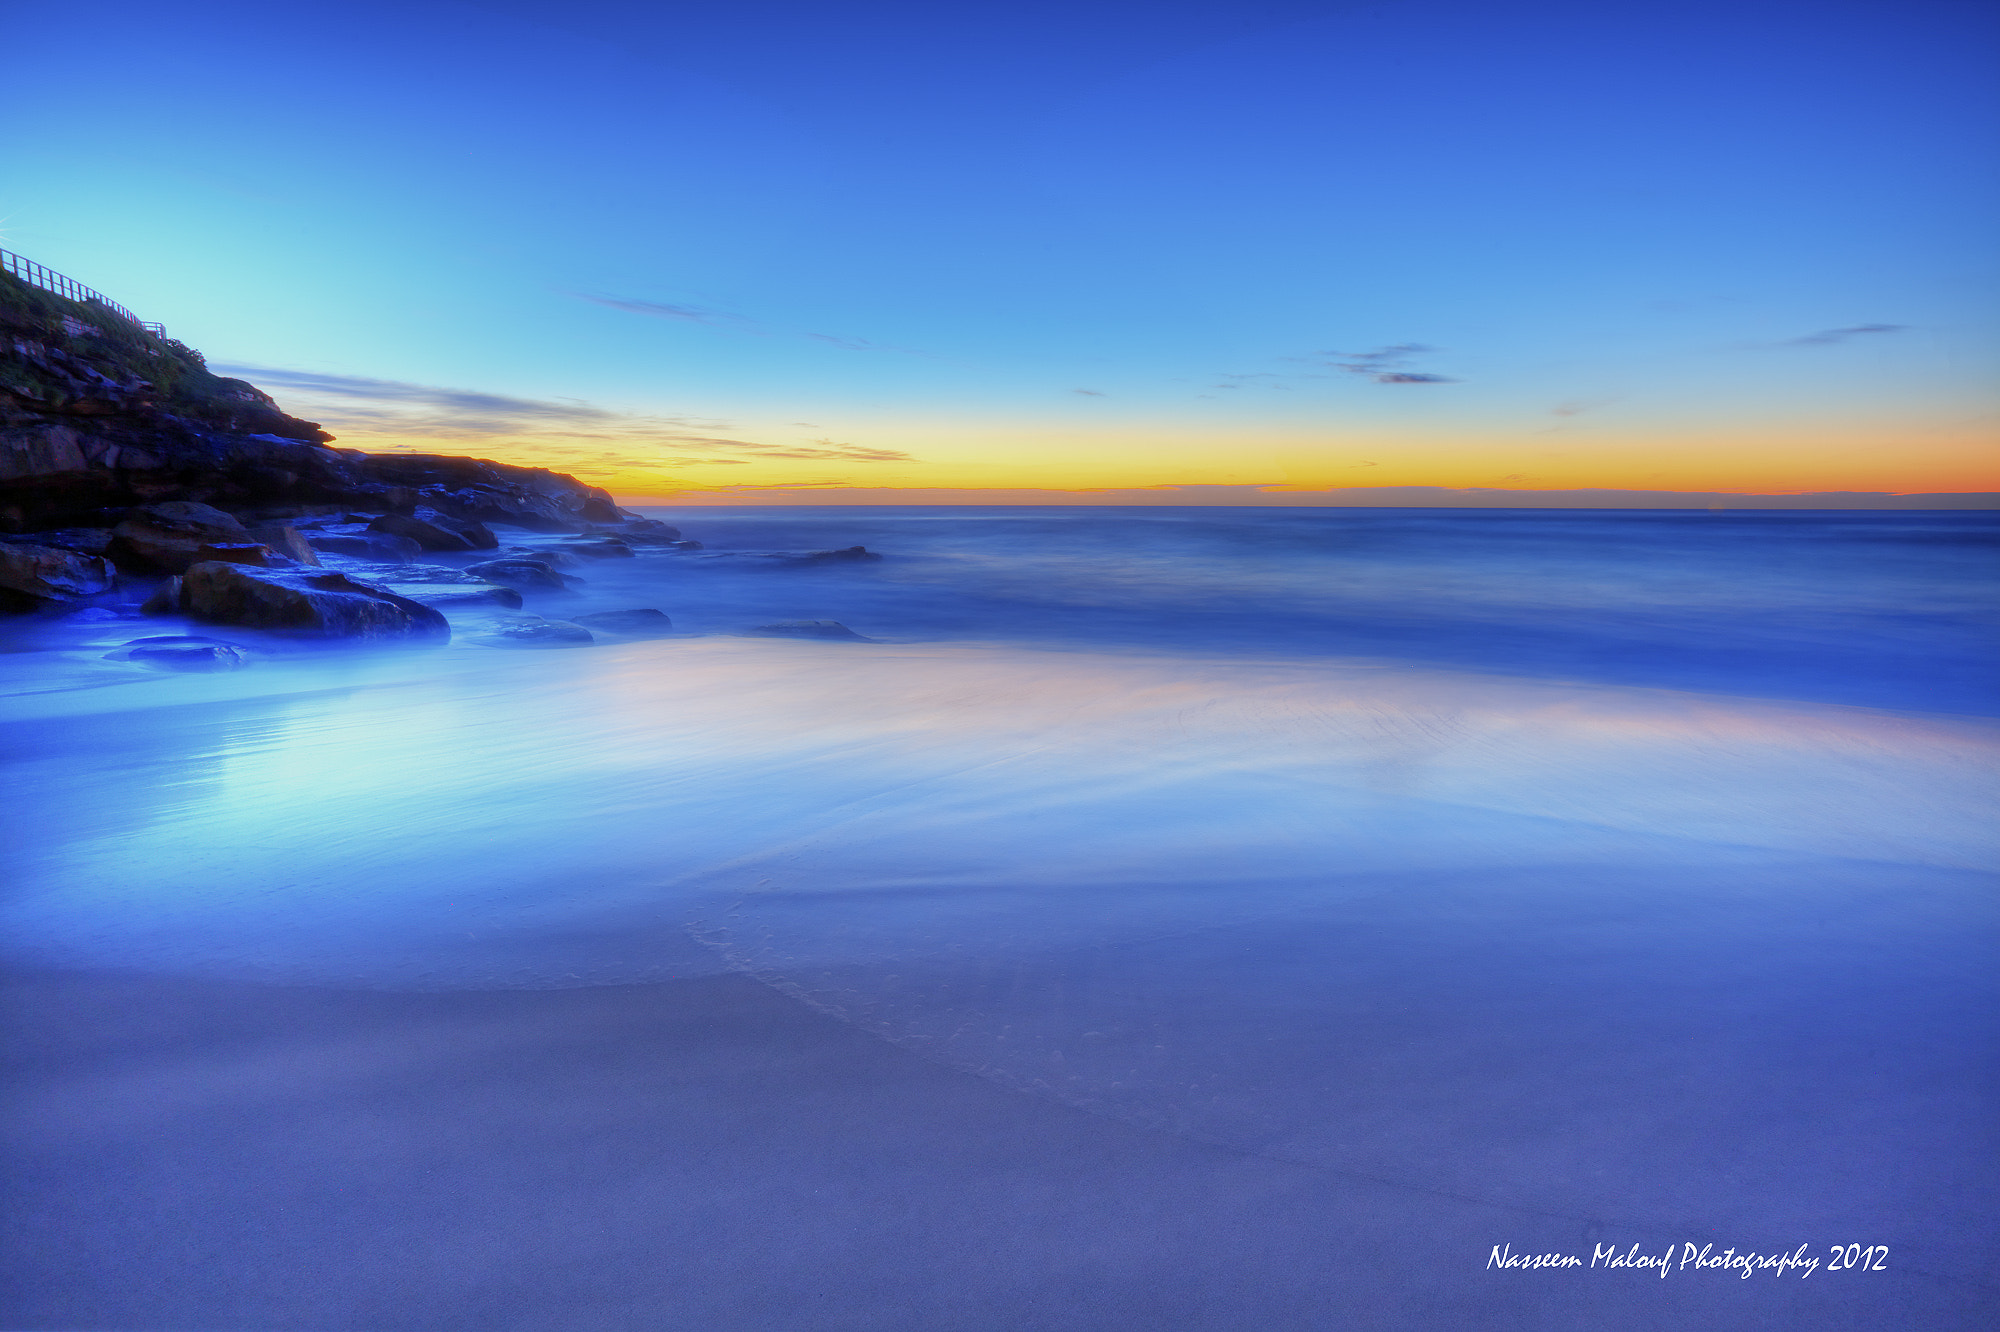 Photograph Bronte sunrise 4 by Dr Nasseem Malouf on 500px